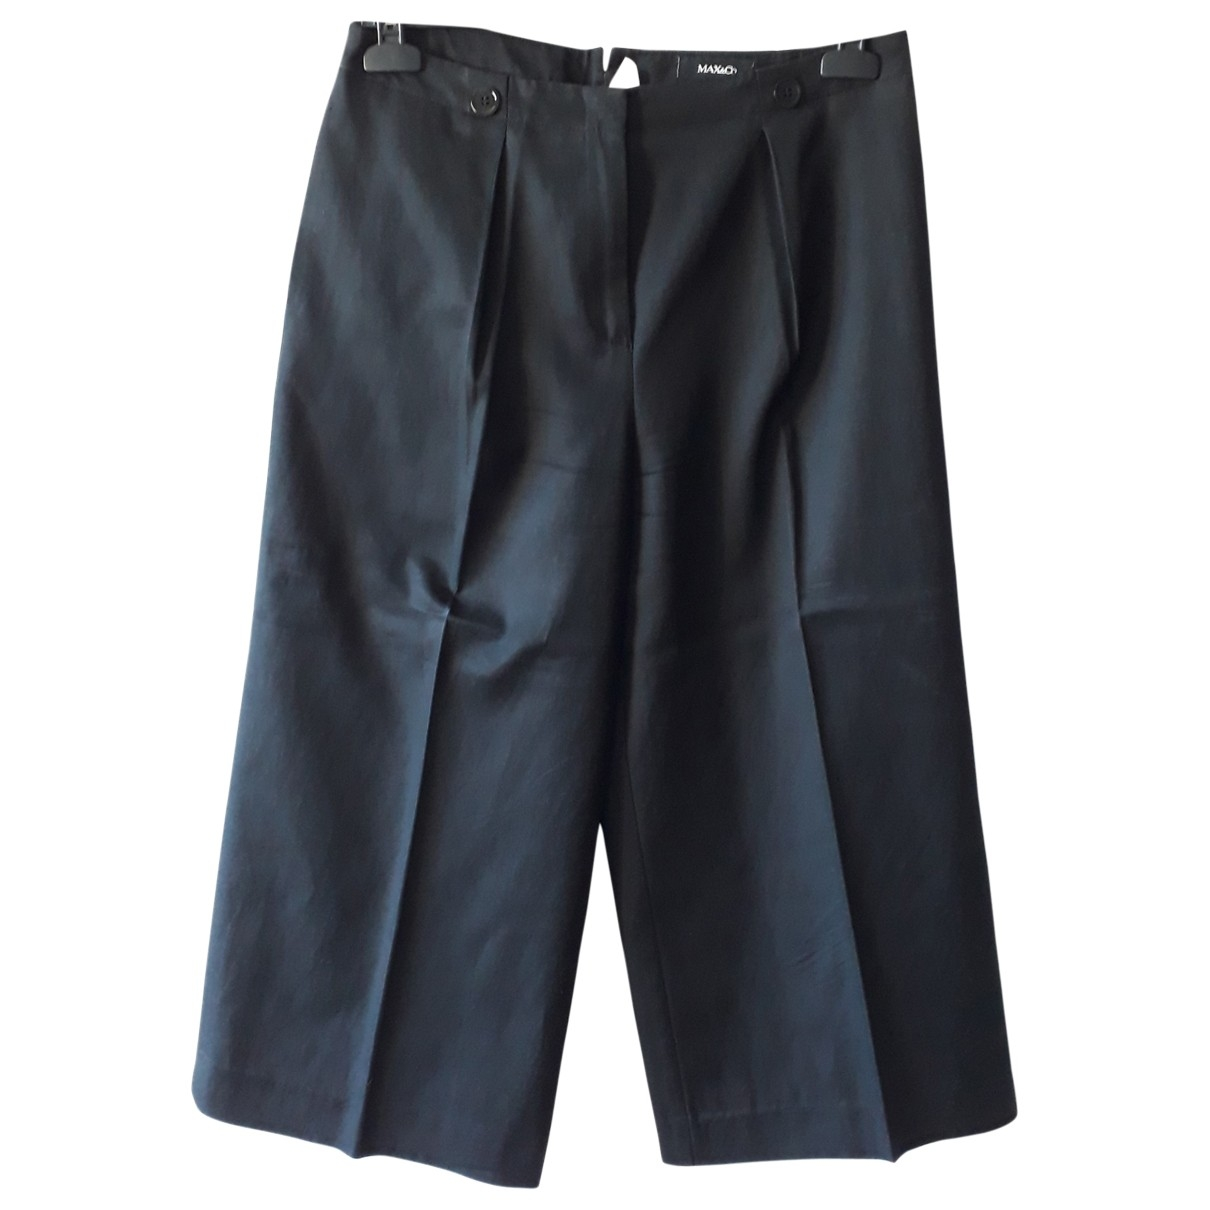 Max & Co \N Black Cotton Trousers for Women 42 IT